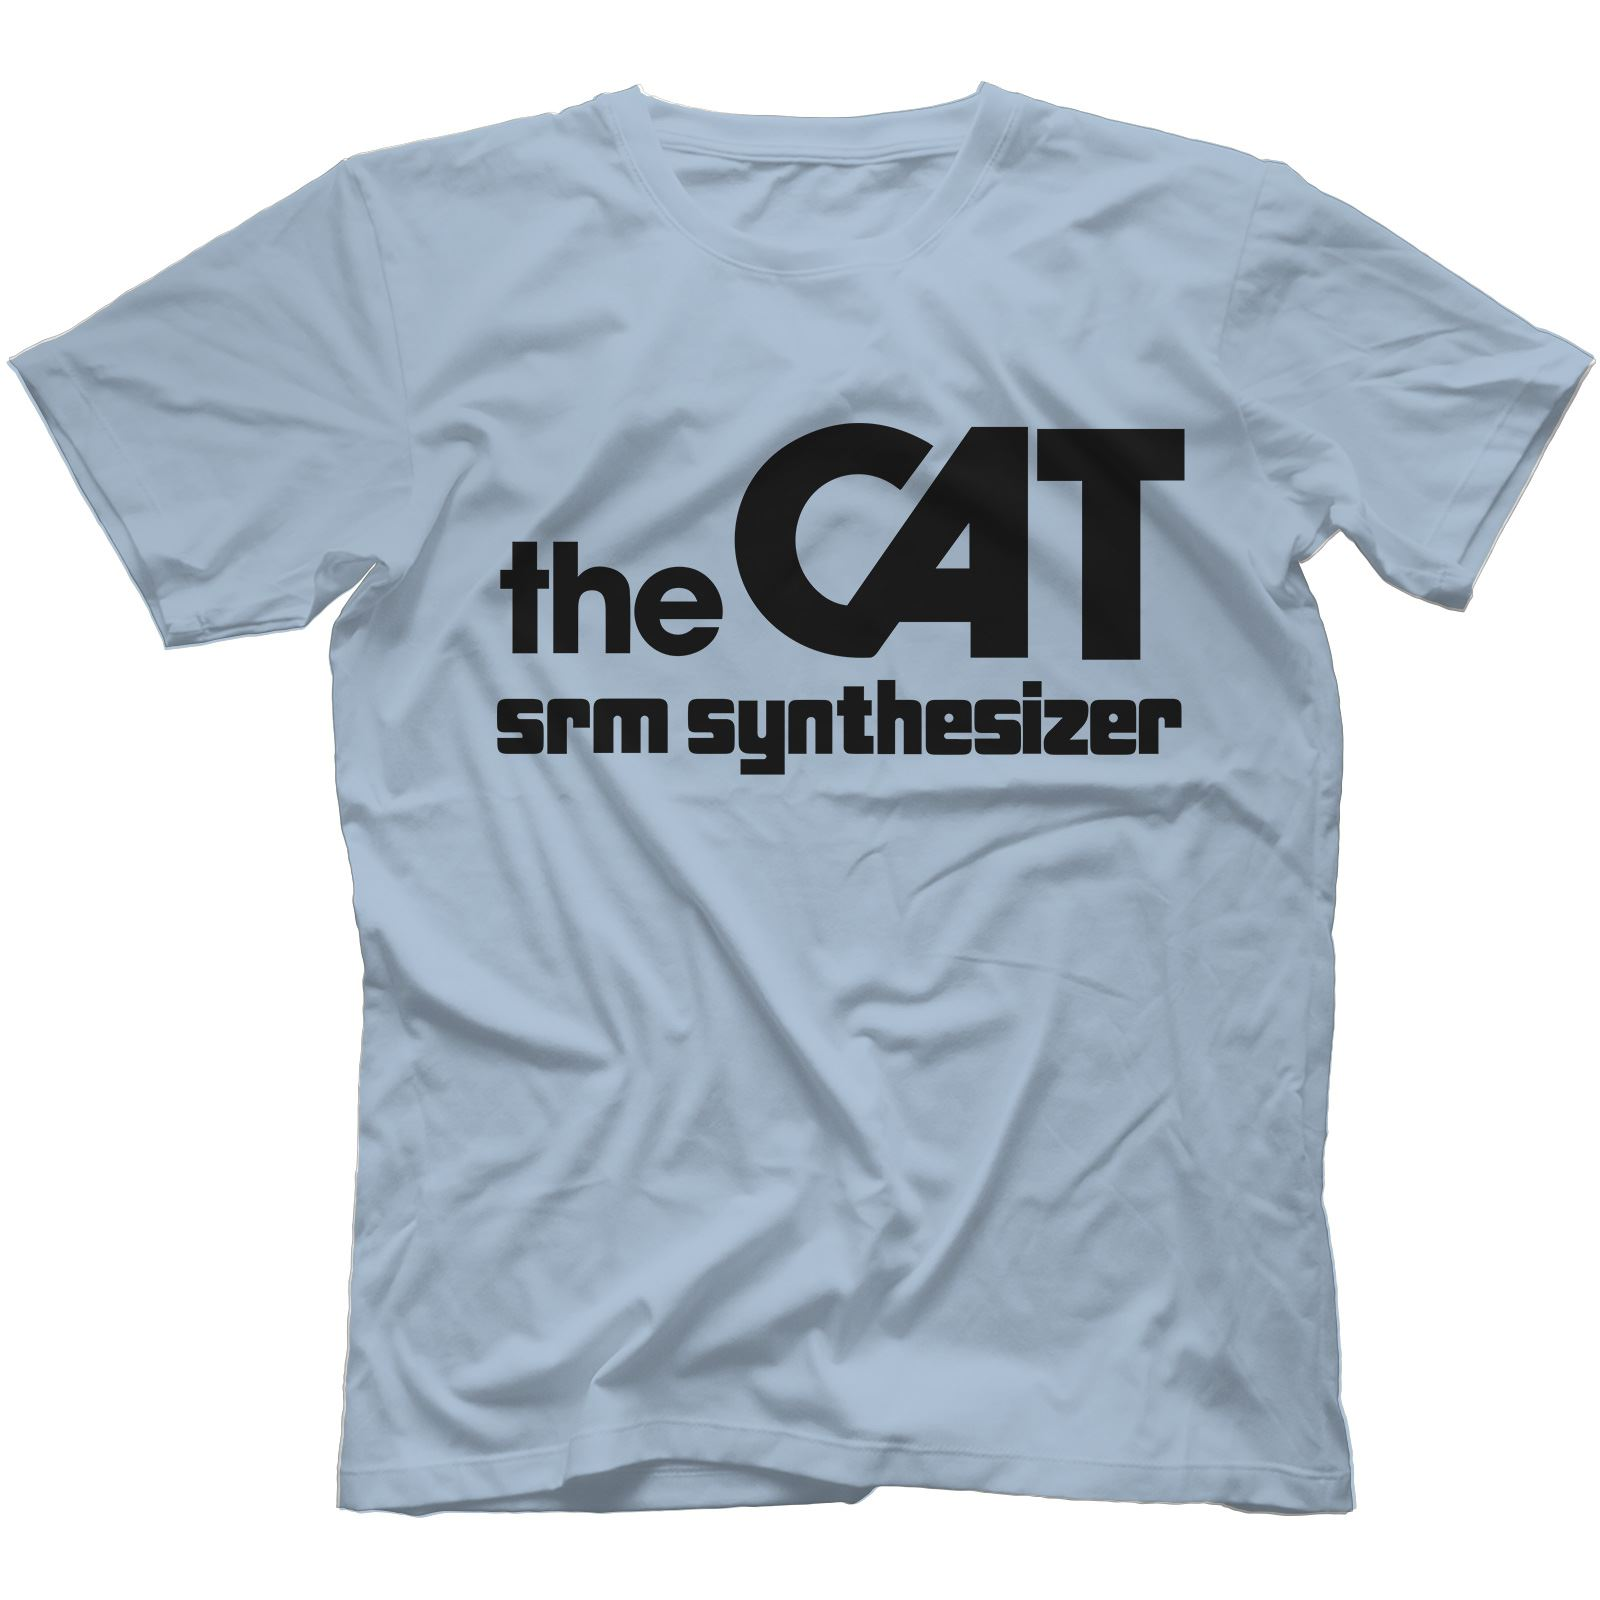 The-Cat-SRM-Synthesiser-T-Shirt-100-Cotton-Retro-Analog-Arp-Odyssey Indexbild 34